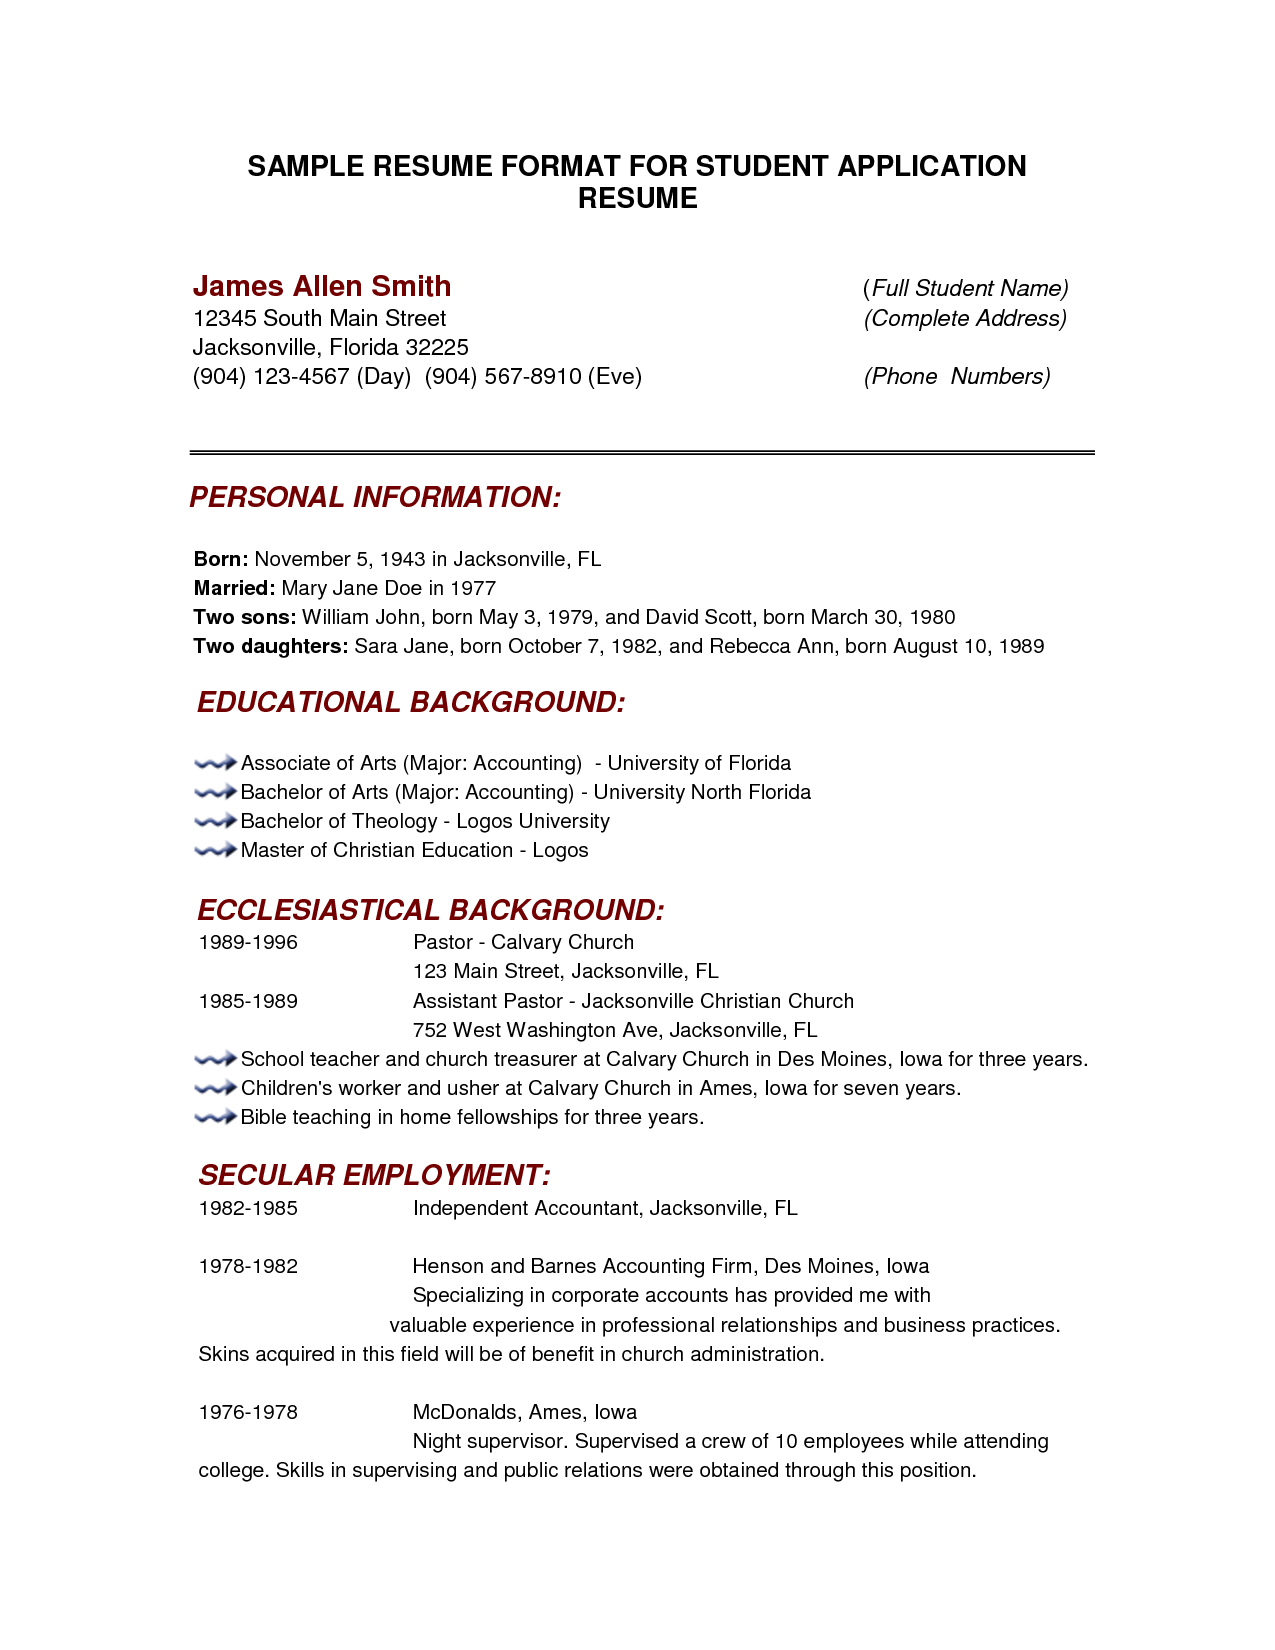 College Resume Format Cover Letter Sample For Job Application Resume Format With  Home